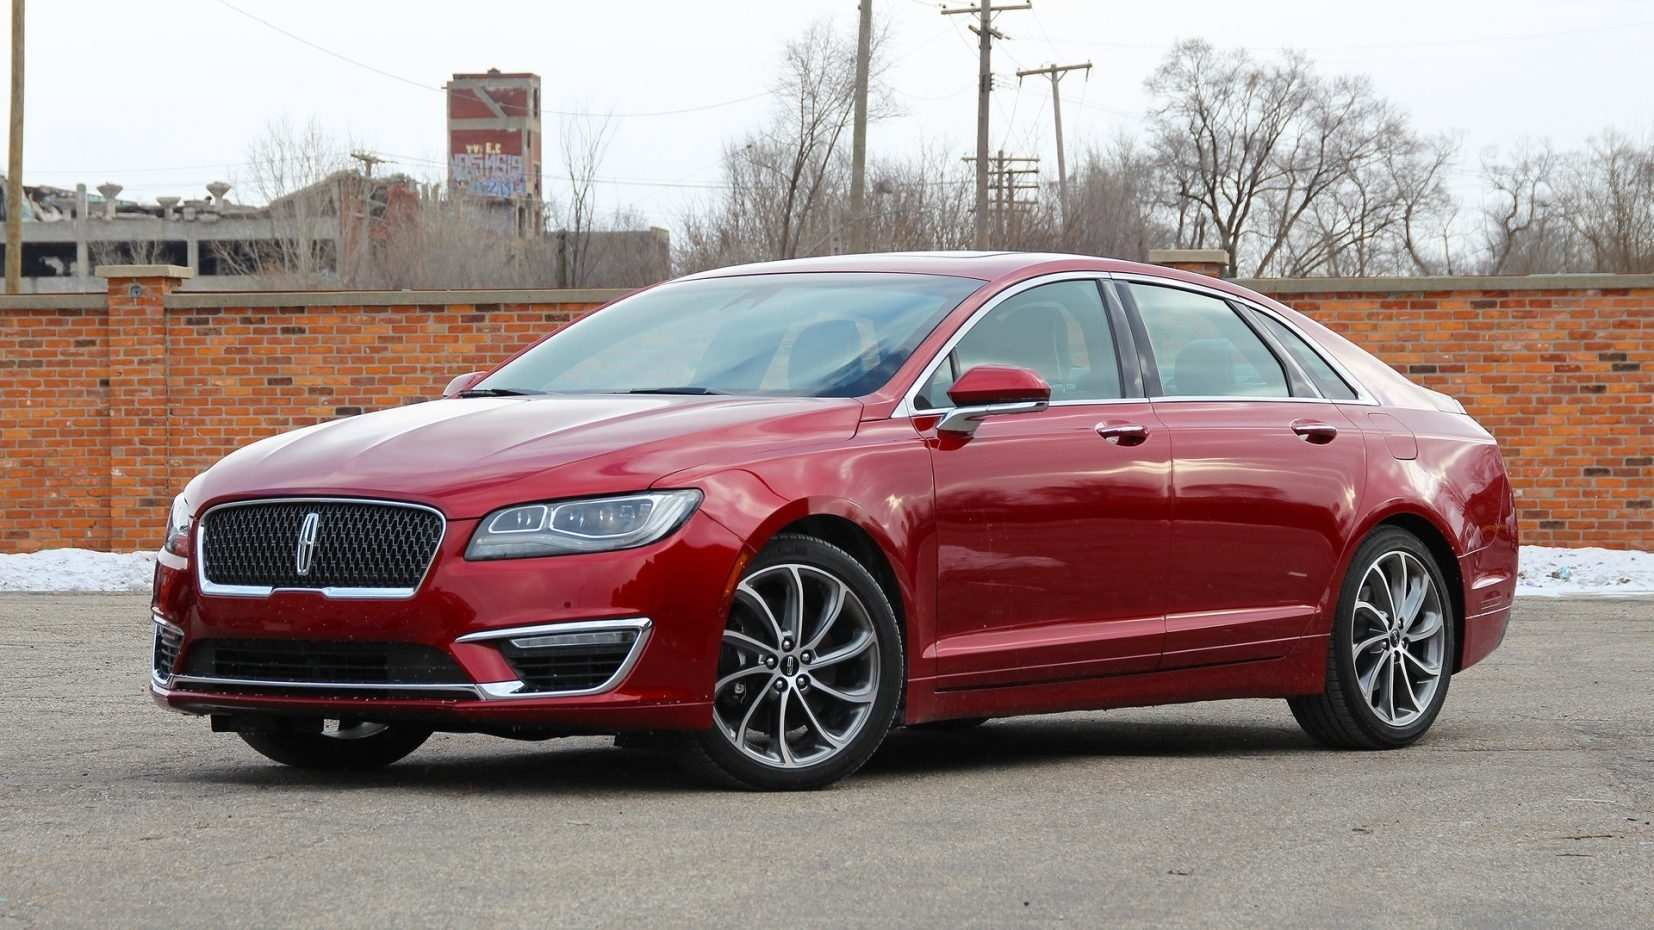 51 The 2019 Lincoln MKS Spy Photos Engine